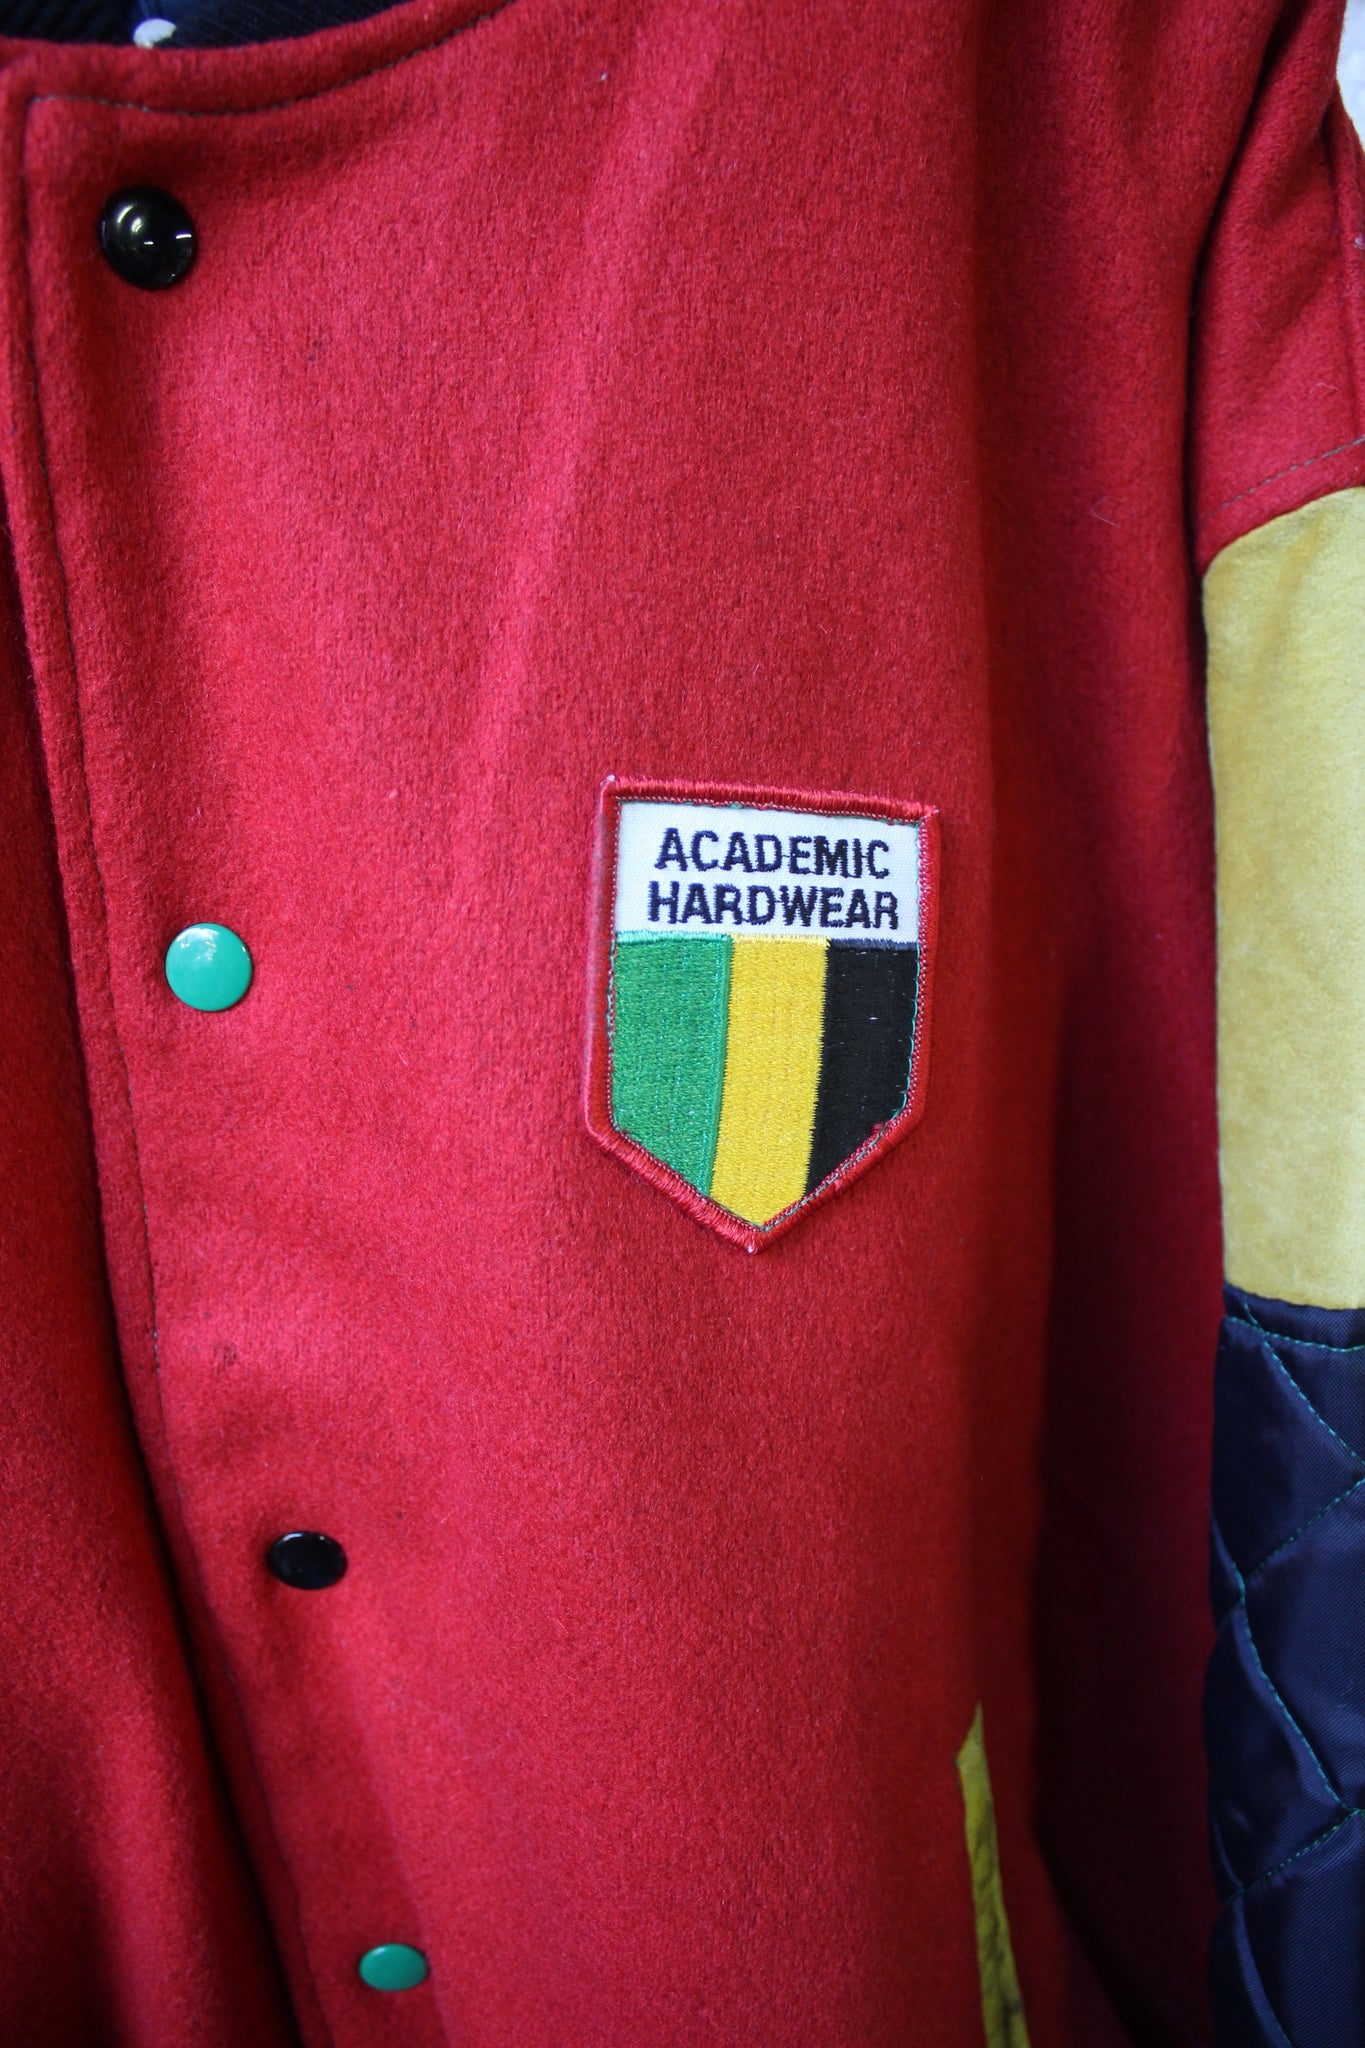 Cross Colours Academic Hardware Jacket